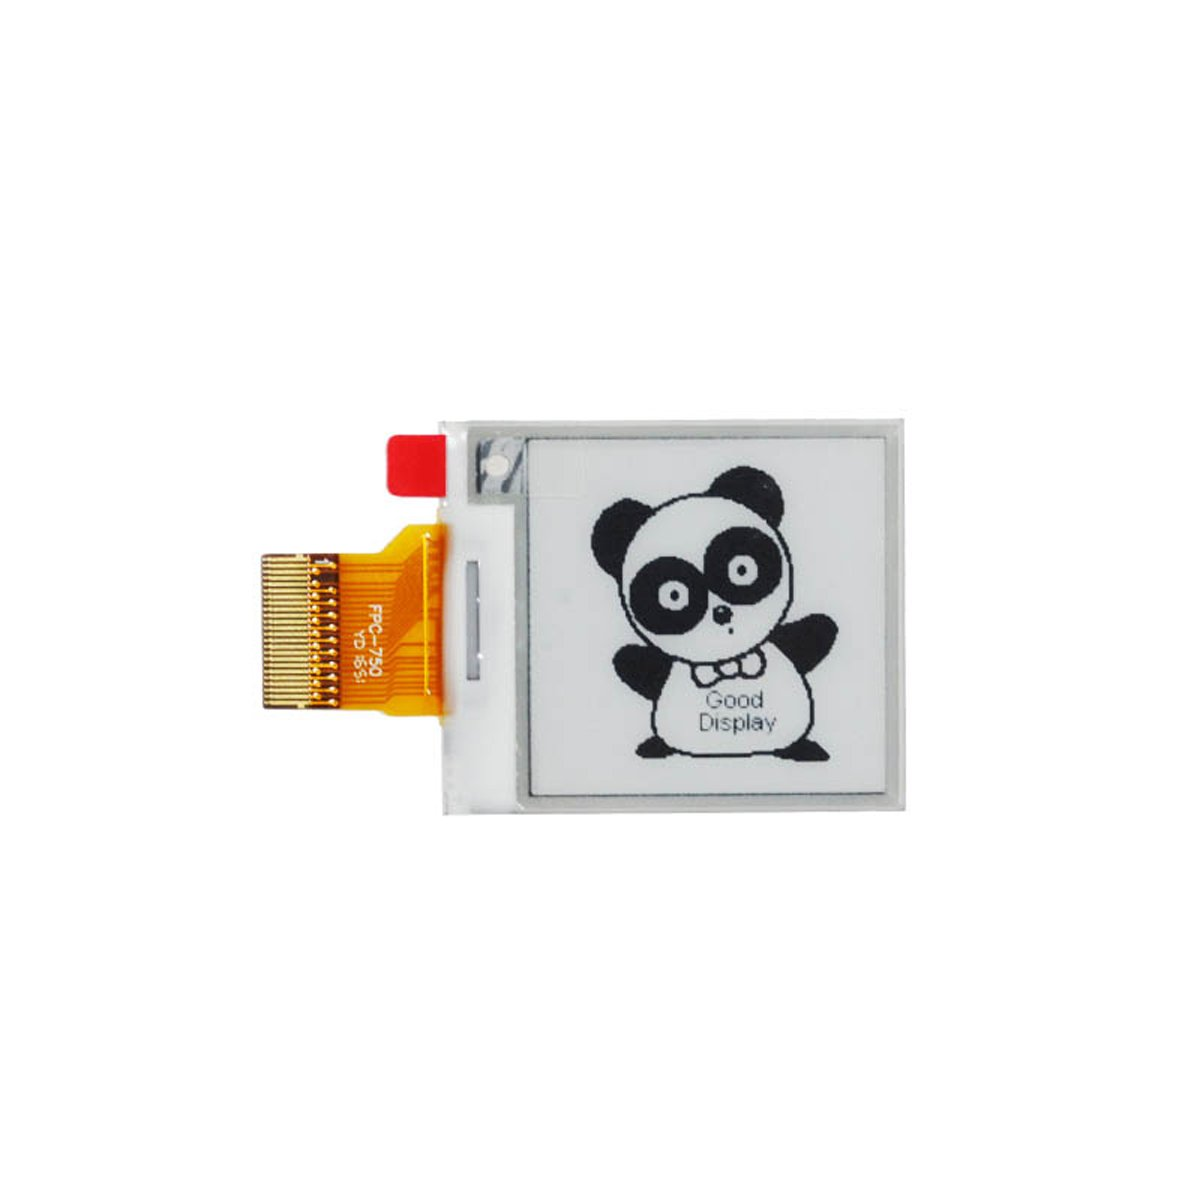 GooDisplay E-Paper Screen Eink Display Electronic Paper Display Panel Black and Write 1.54 Inch Ultra Low Temperature SPI Interface